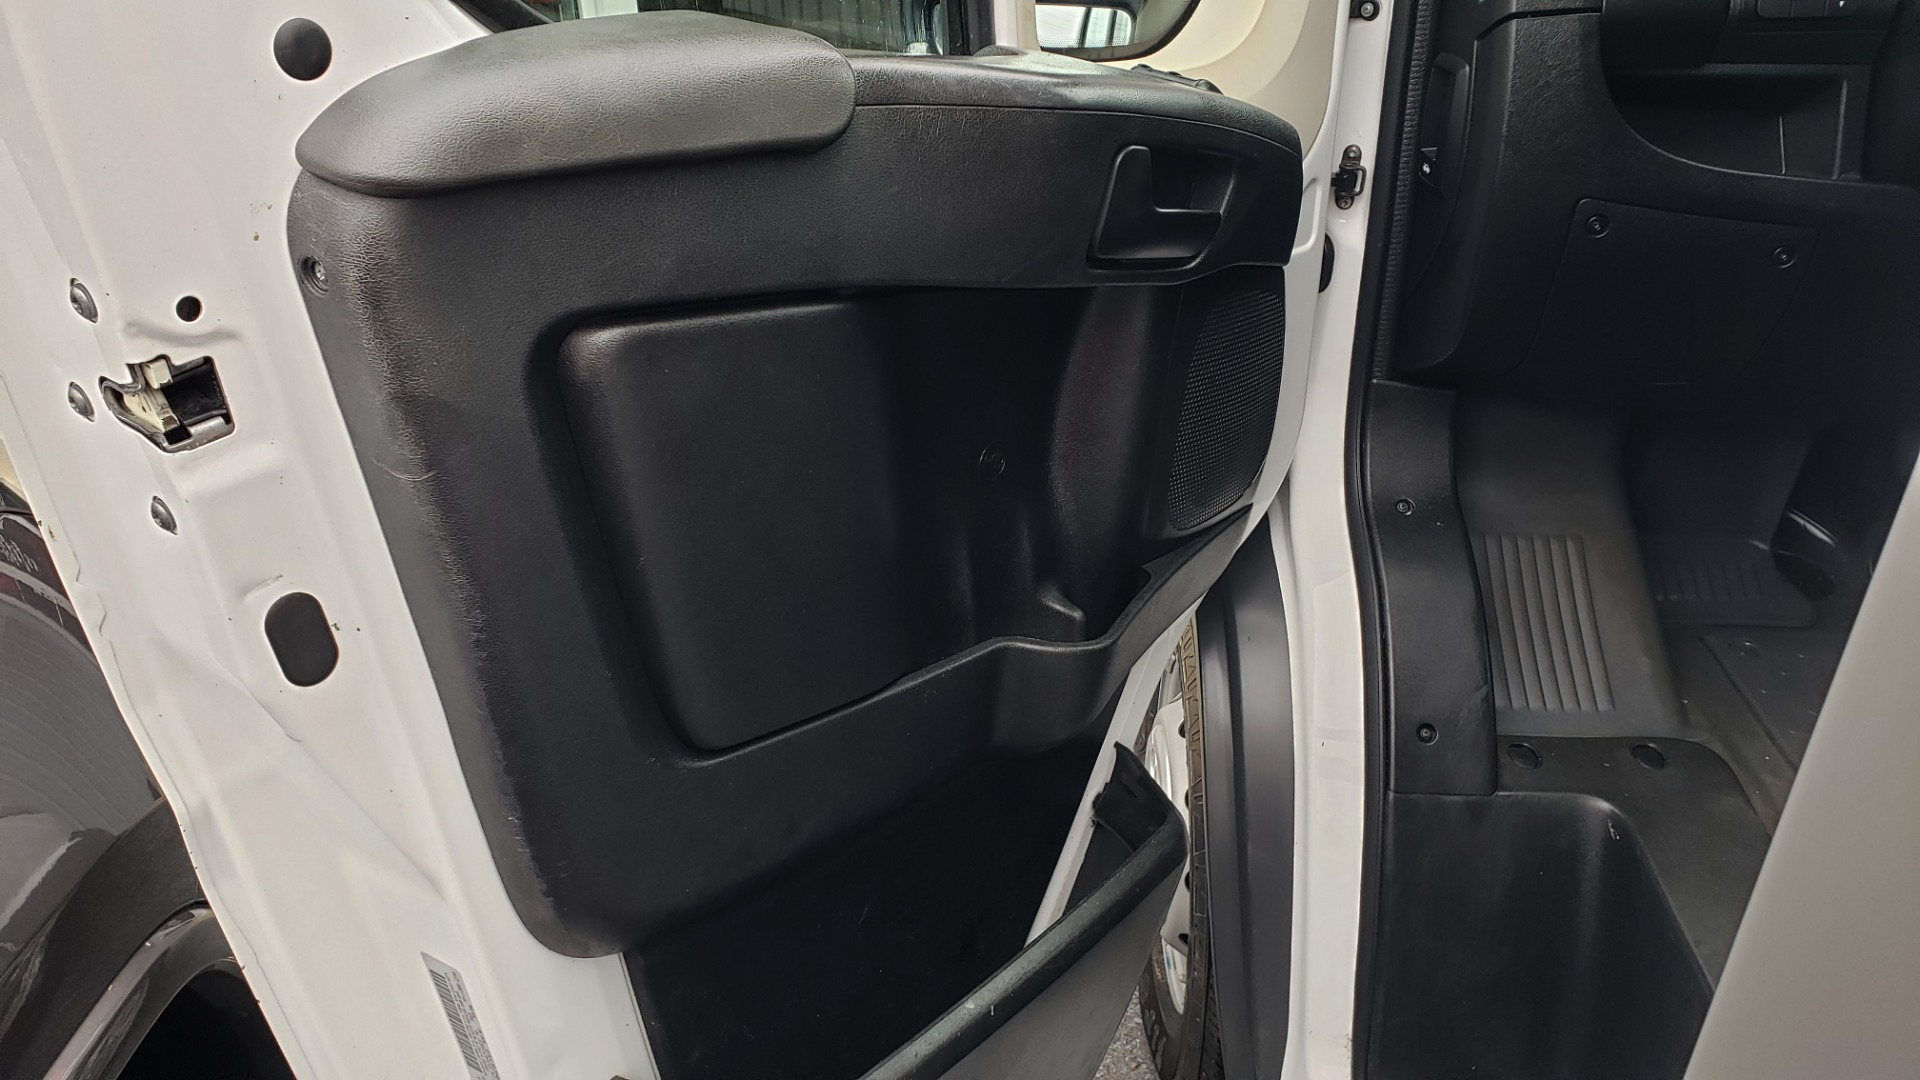 Used 2015 Ram PROMASTER CARGO VAN 136-INCH WB / LOW ROOF / LADDER RACK / INSIDE RACKS for sale $15,995 at Formula Imports in Charlotte NC 28227 24